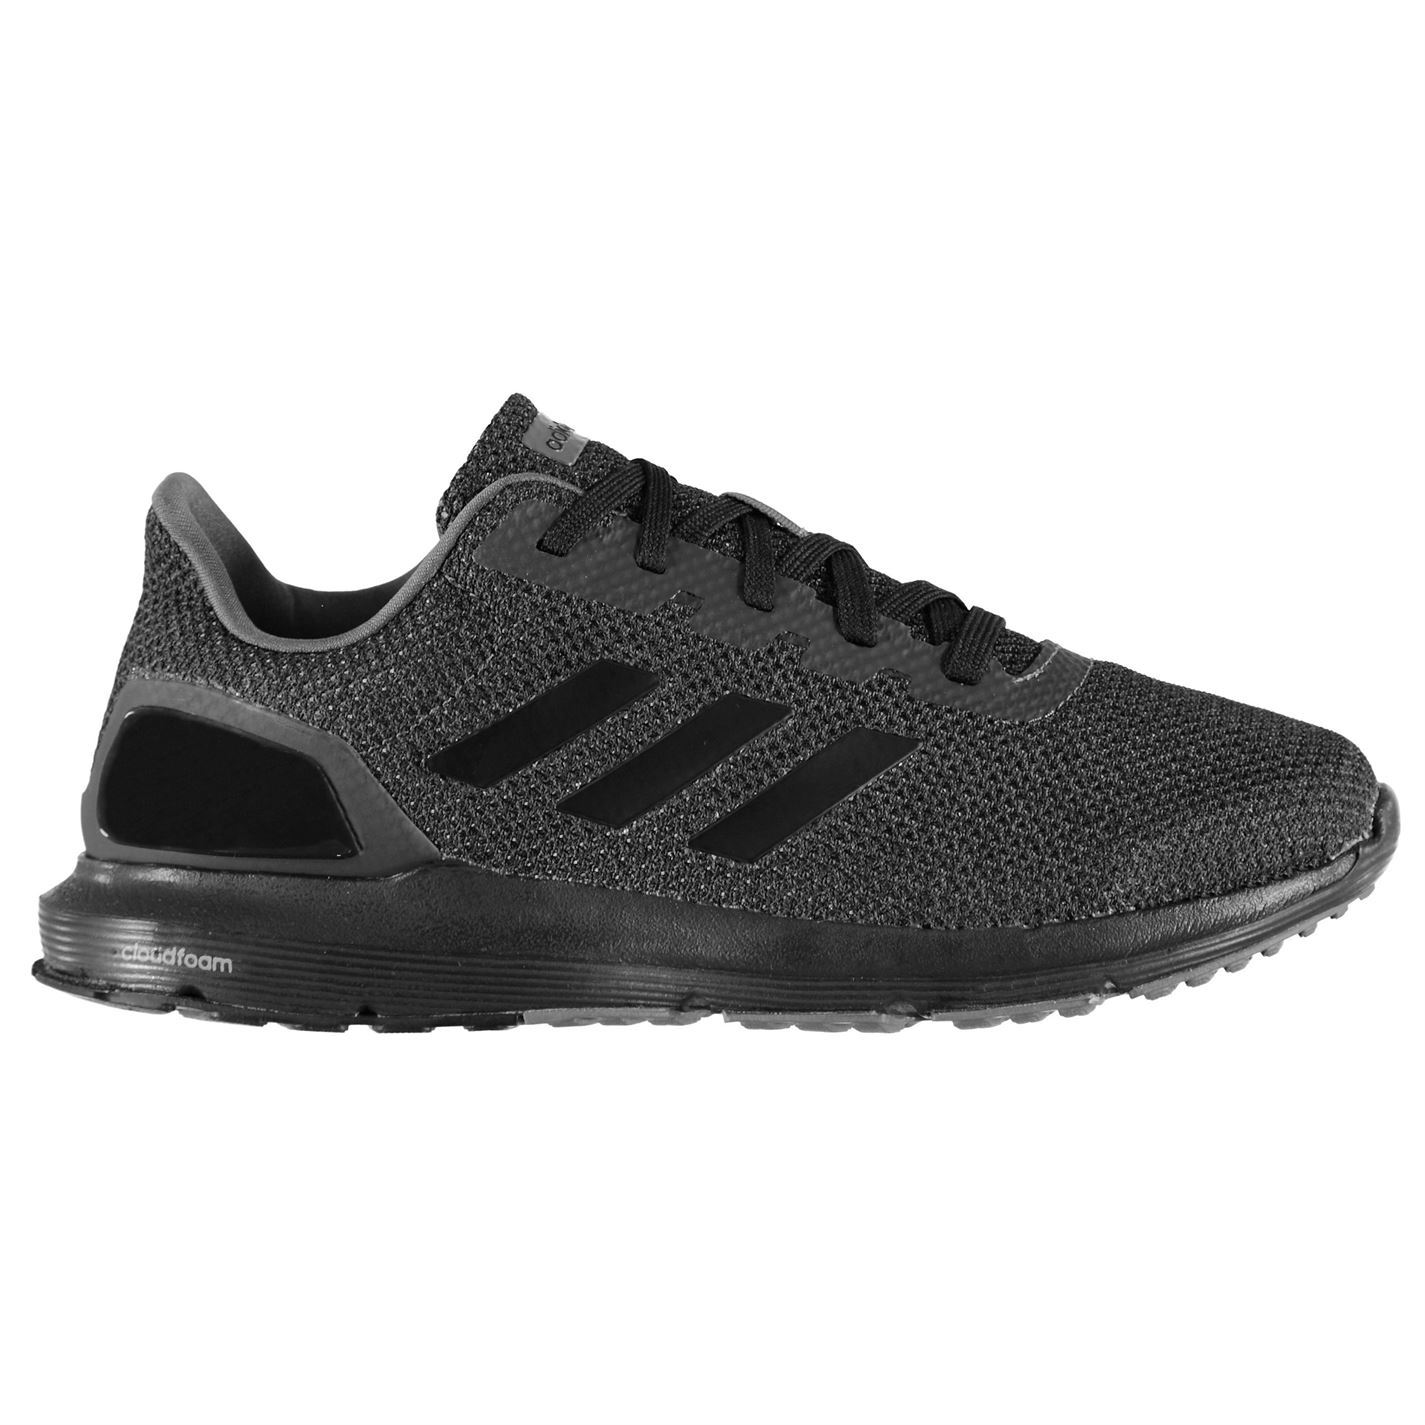 e70921d11 adidas Cosmic 2 Cloudfoam Trainers Mens Black Sports Shoes Sneakers ...